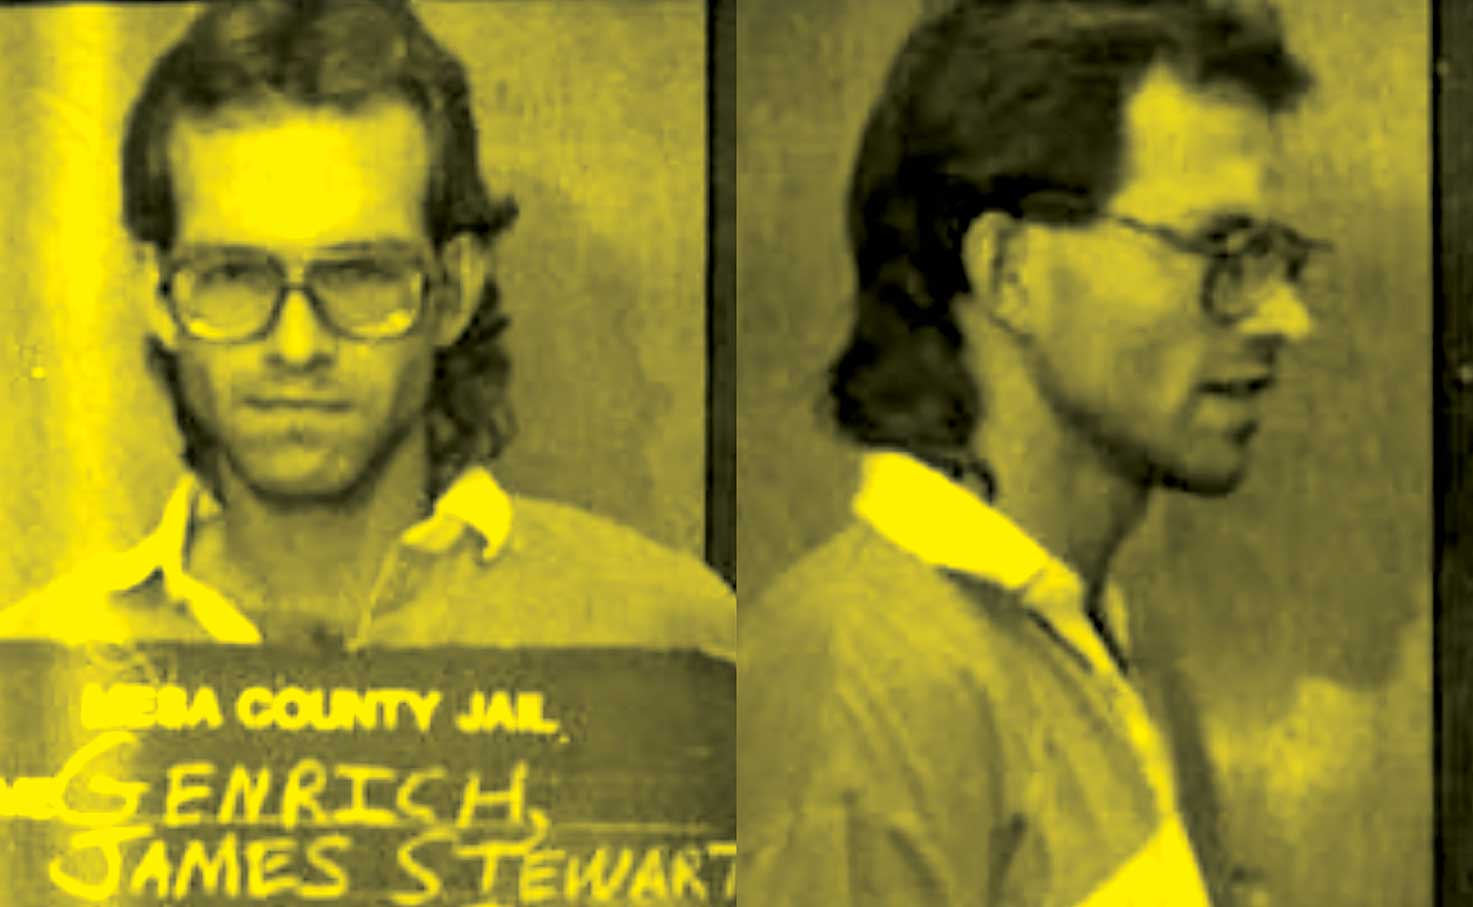 Forensic Science Put Jimmy Genrich in Prison for 24 Years. What if It Wasn't Science?